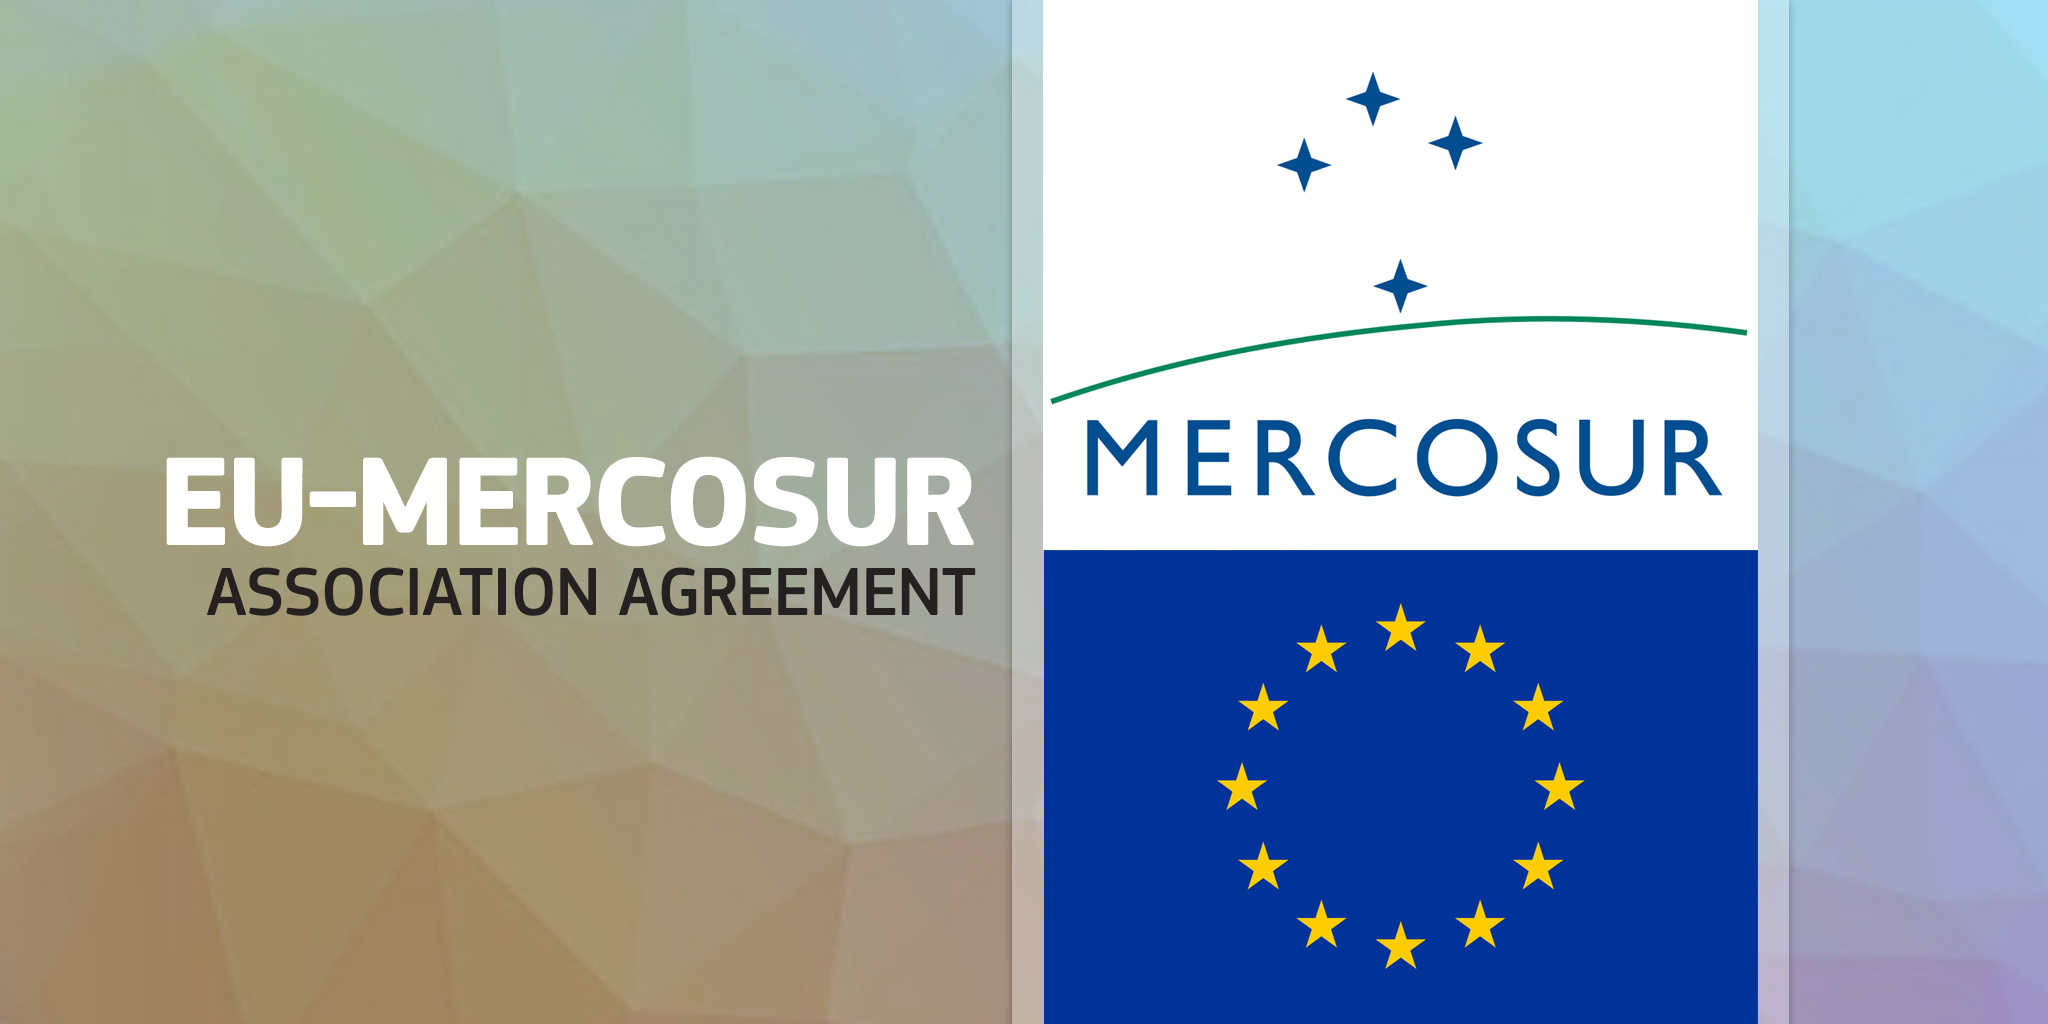 Mercosur and the European Union Reach Unprecedented Agreement on Trade